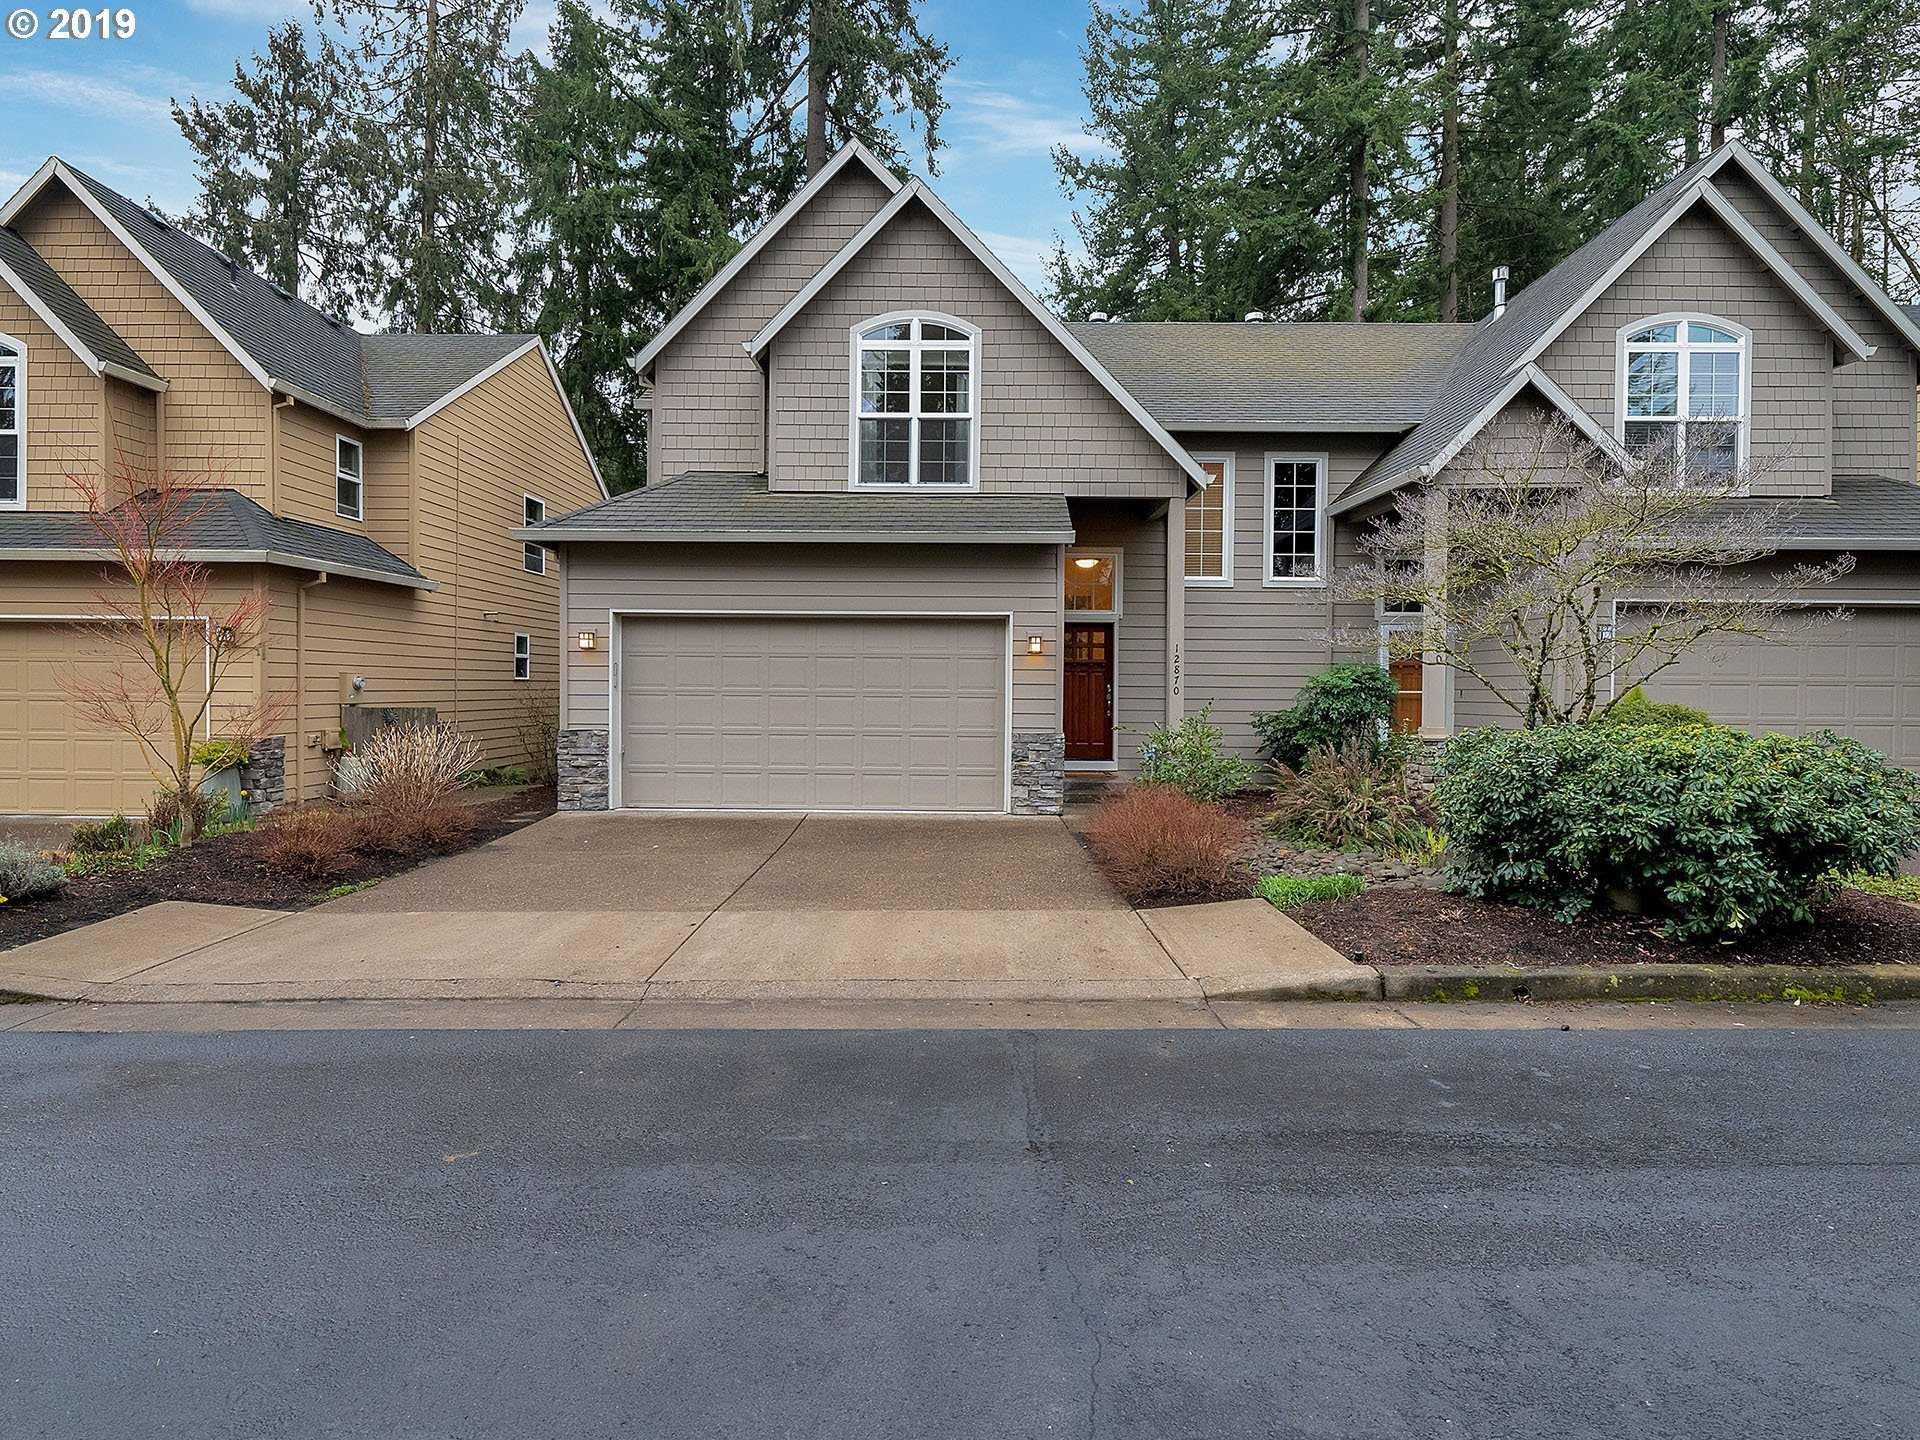 $389,500 - 3Br/3Ba -  for Sale in Blue Heron Park, Tigard